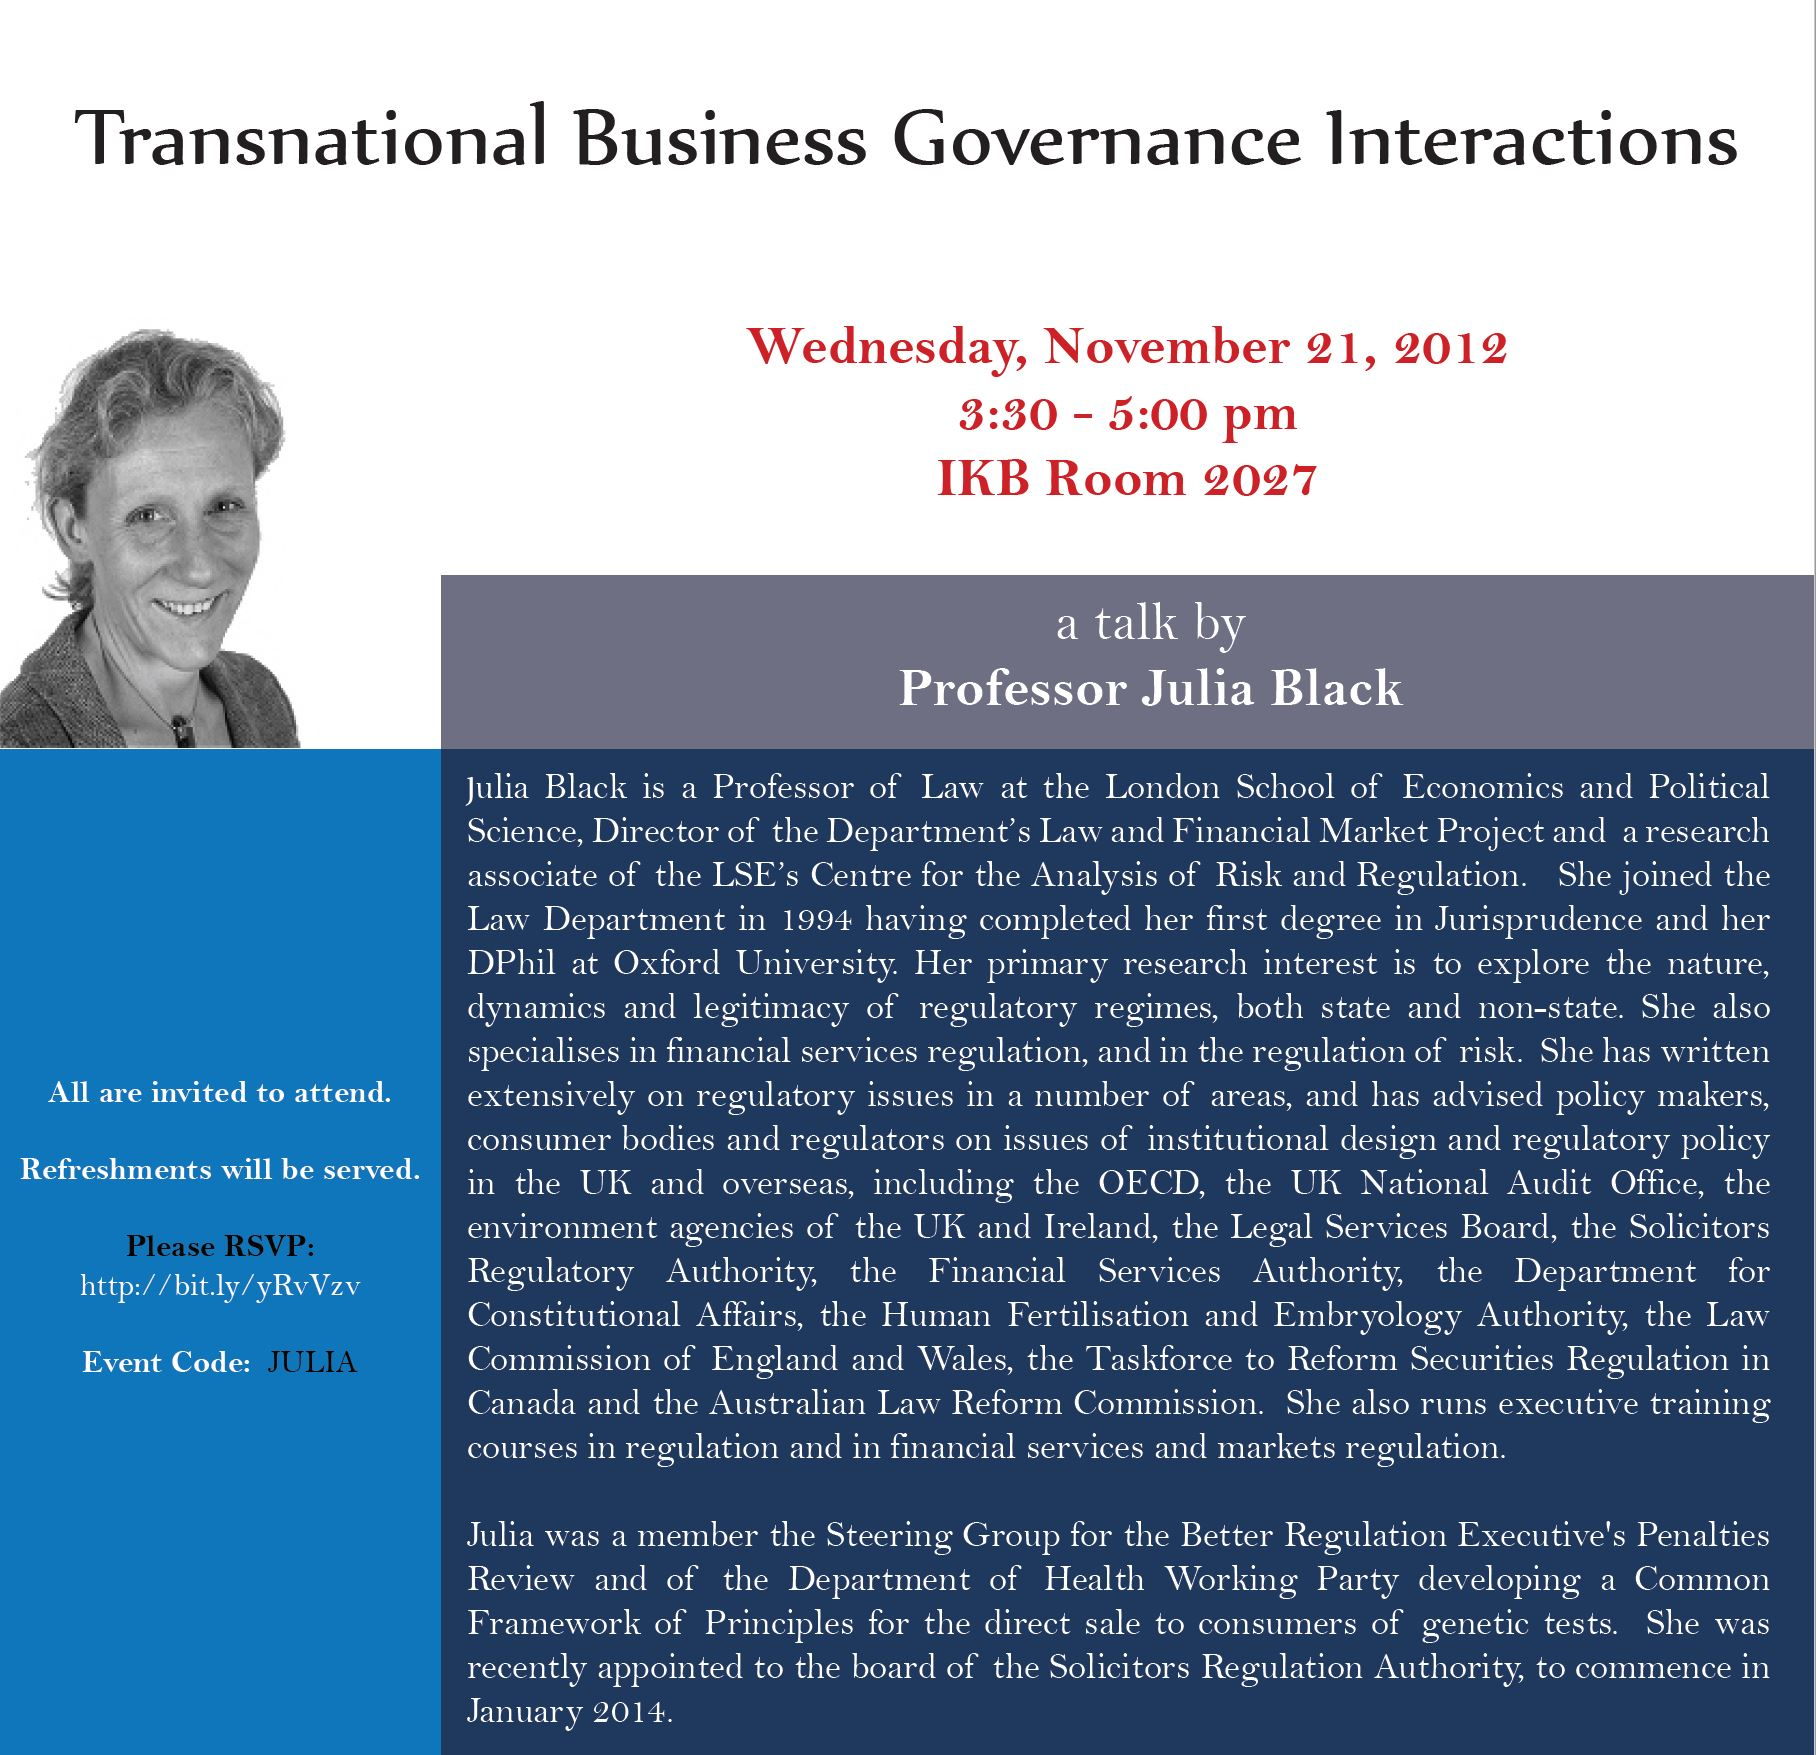 Poster for Julia Black lecture, York University, November 21, 2012